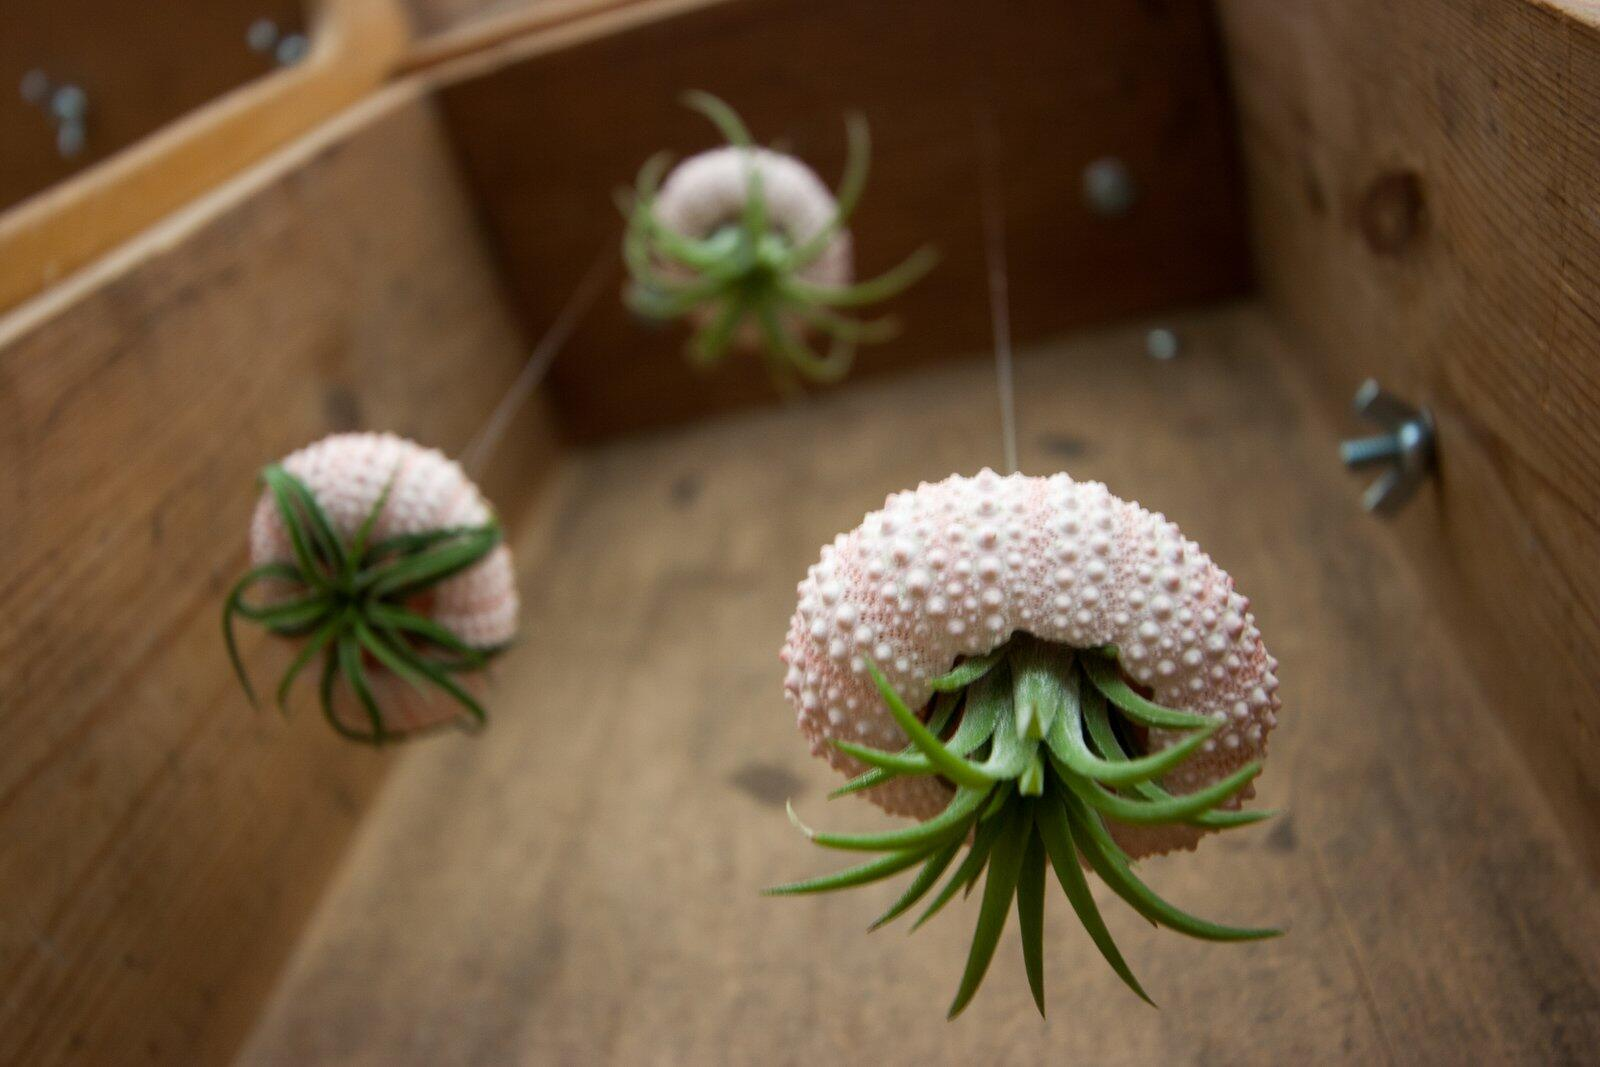 Here they are again - Tillandsia cunningly disguised as jellyfish using sea urchin shells. http://t.co/bC5vMoxTs9